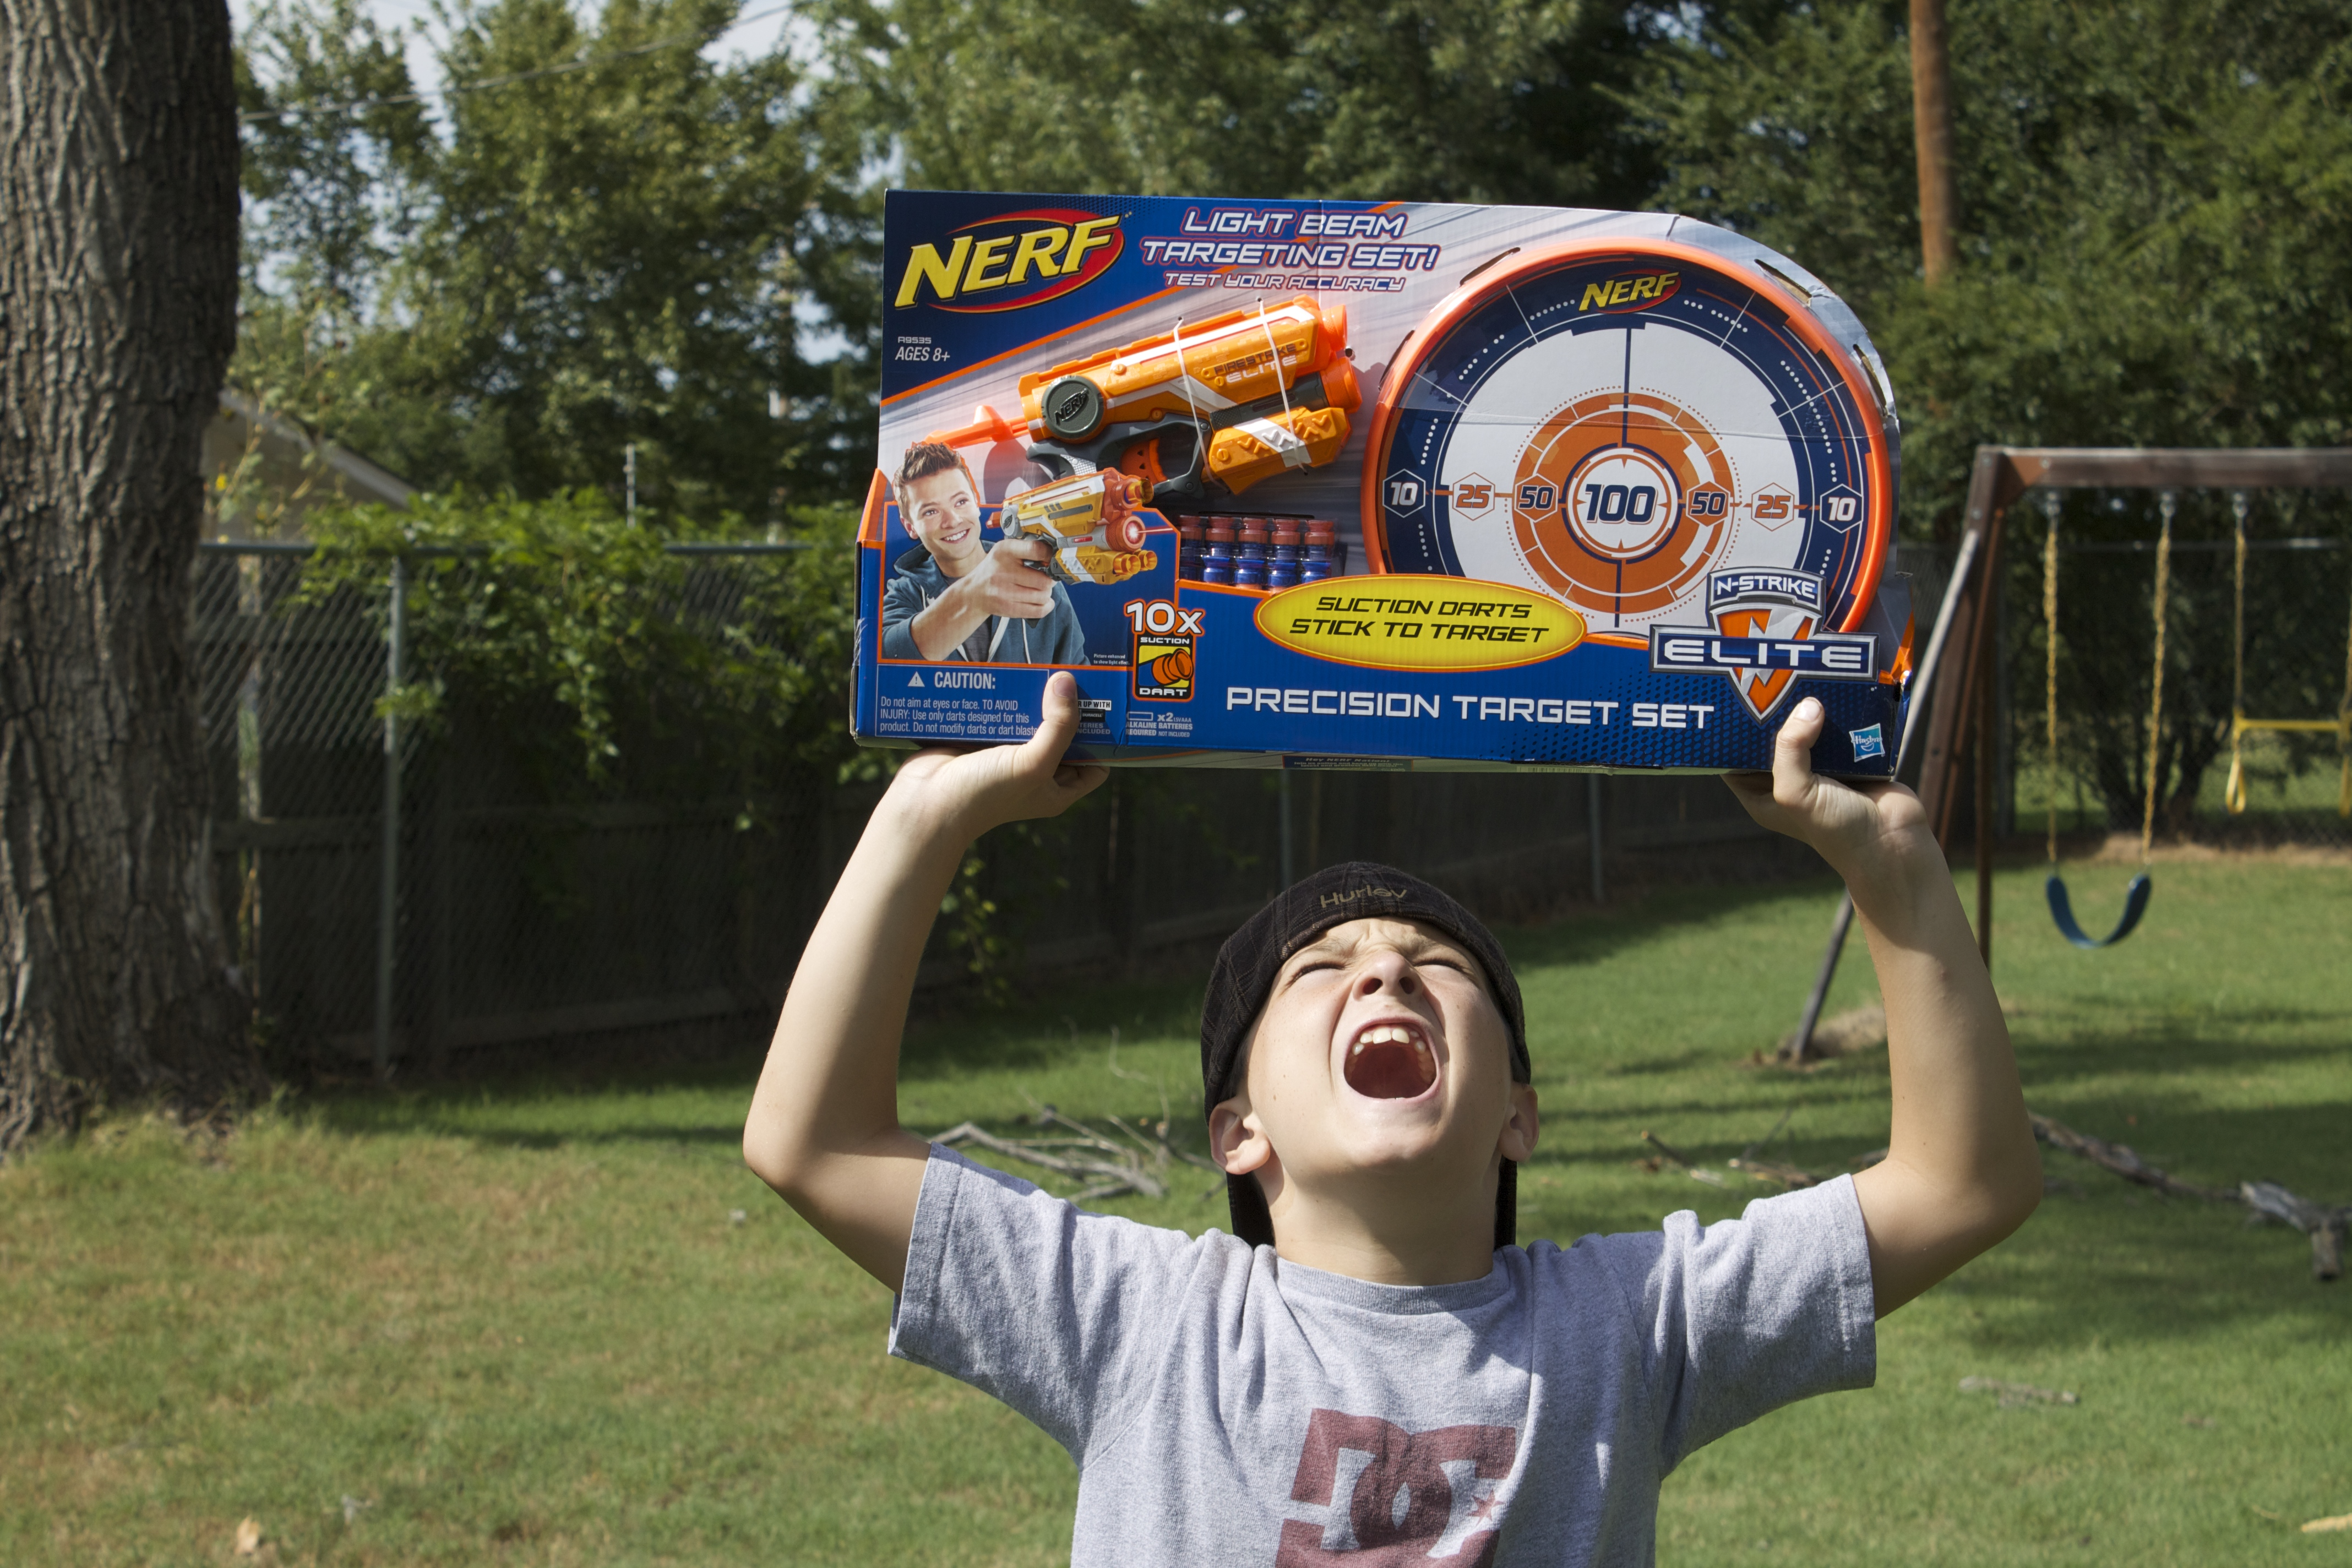 Fall Fun With New Toys From Hasbro